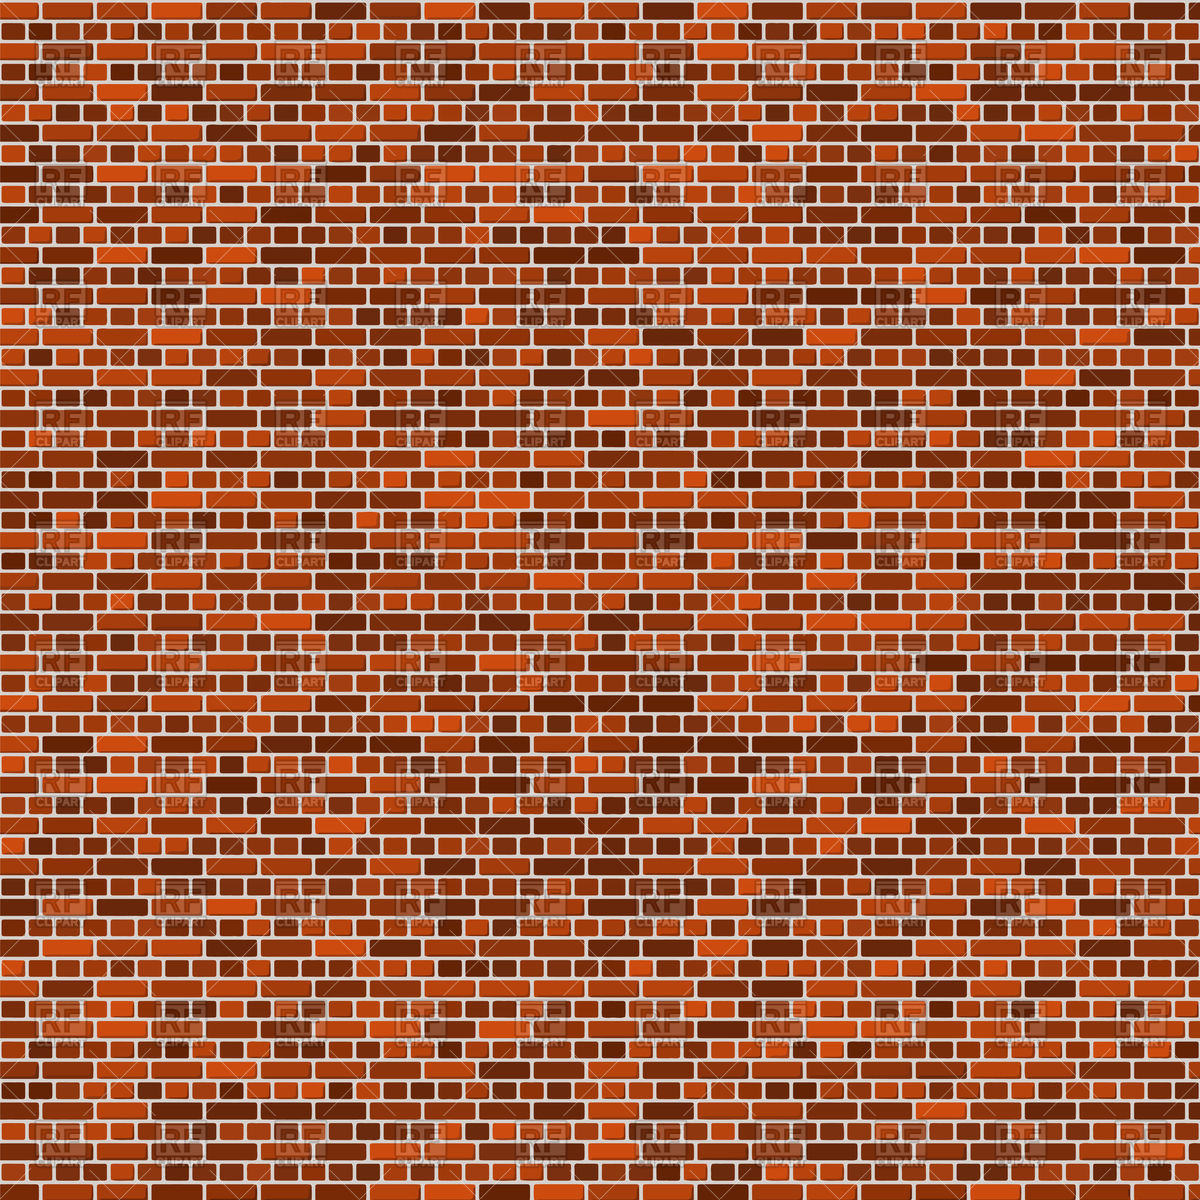 1200x1200 Brick Wall Background Vector Image Vector Artwork Of Backgrounds